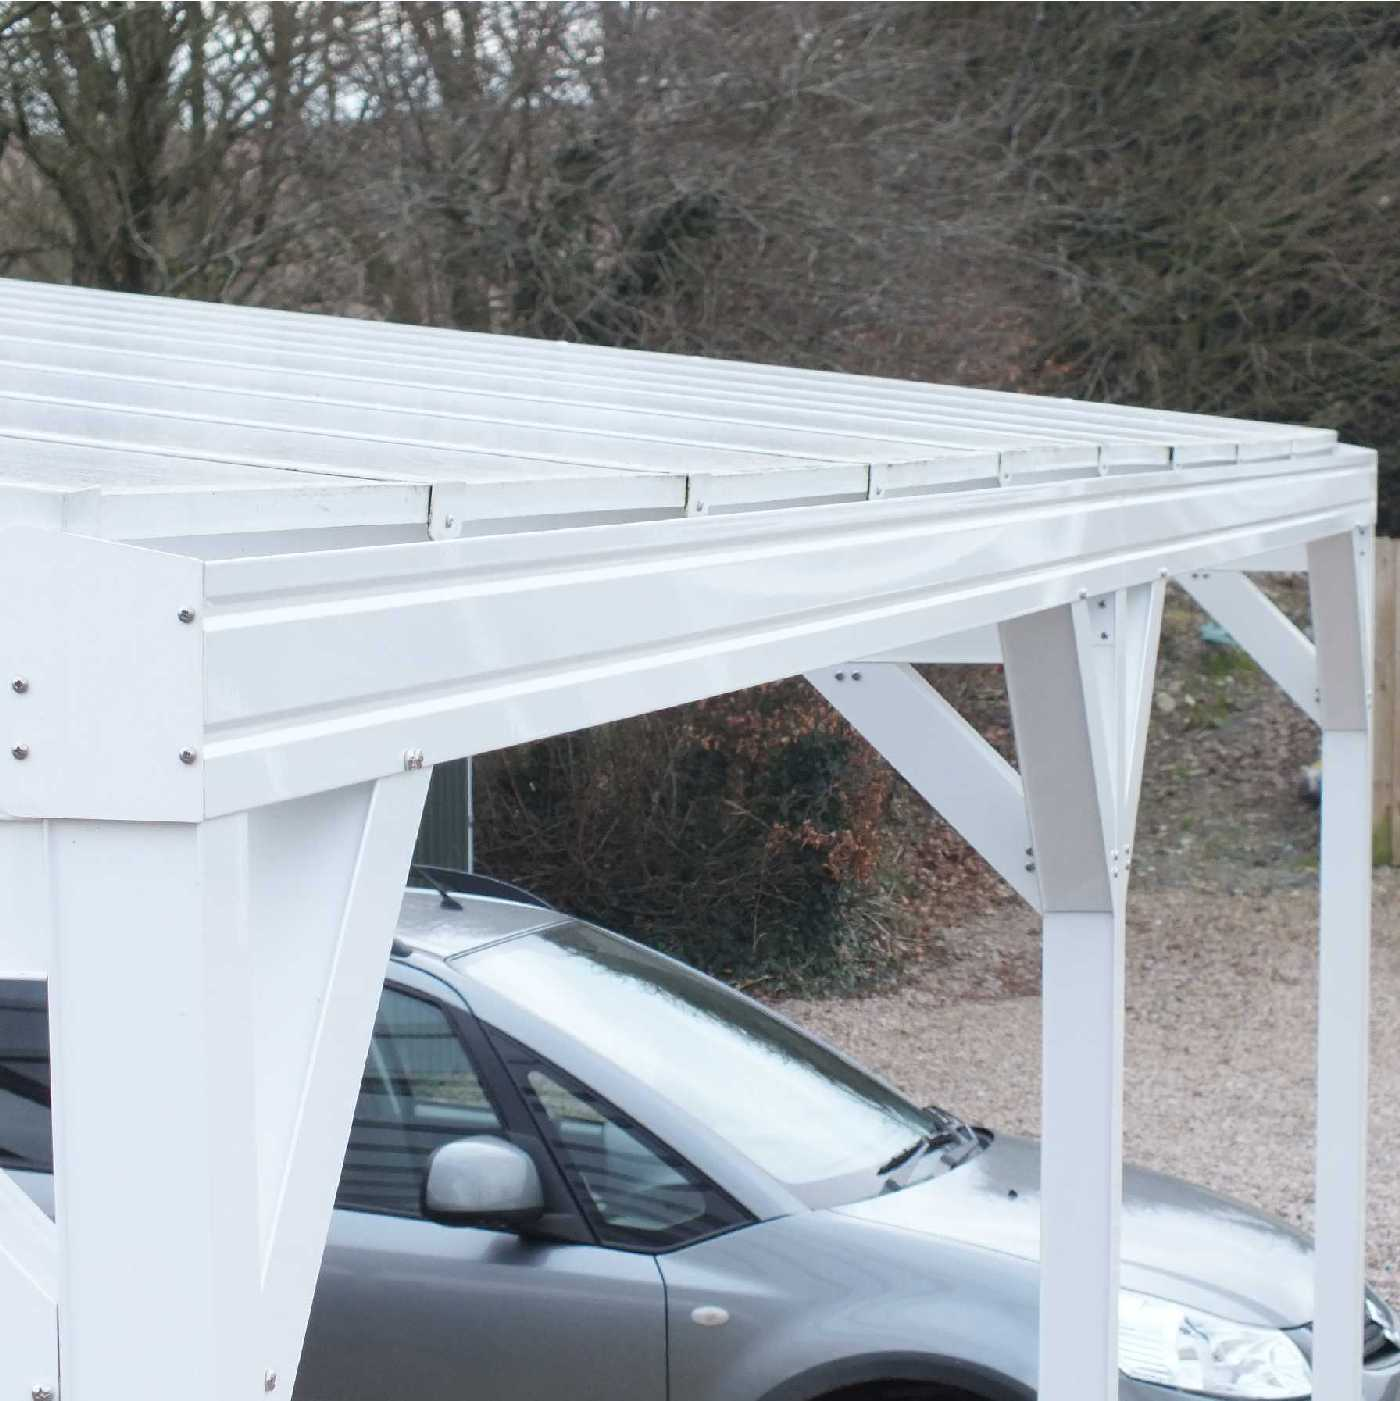 Omega Smart Free-Standing, MonoPitch Roof Canopy with 16mm Polycarbonate Glazing - 7.8m (W) x 3.5m (P), (8) Supporting Posts from Omega Build